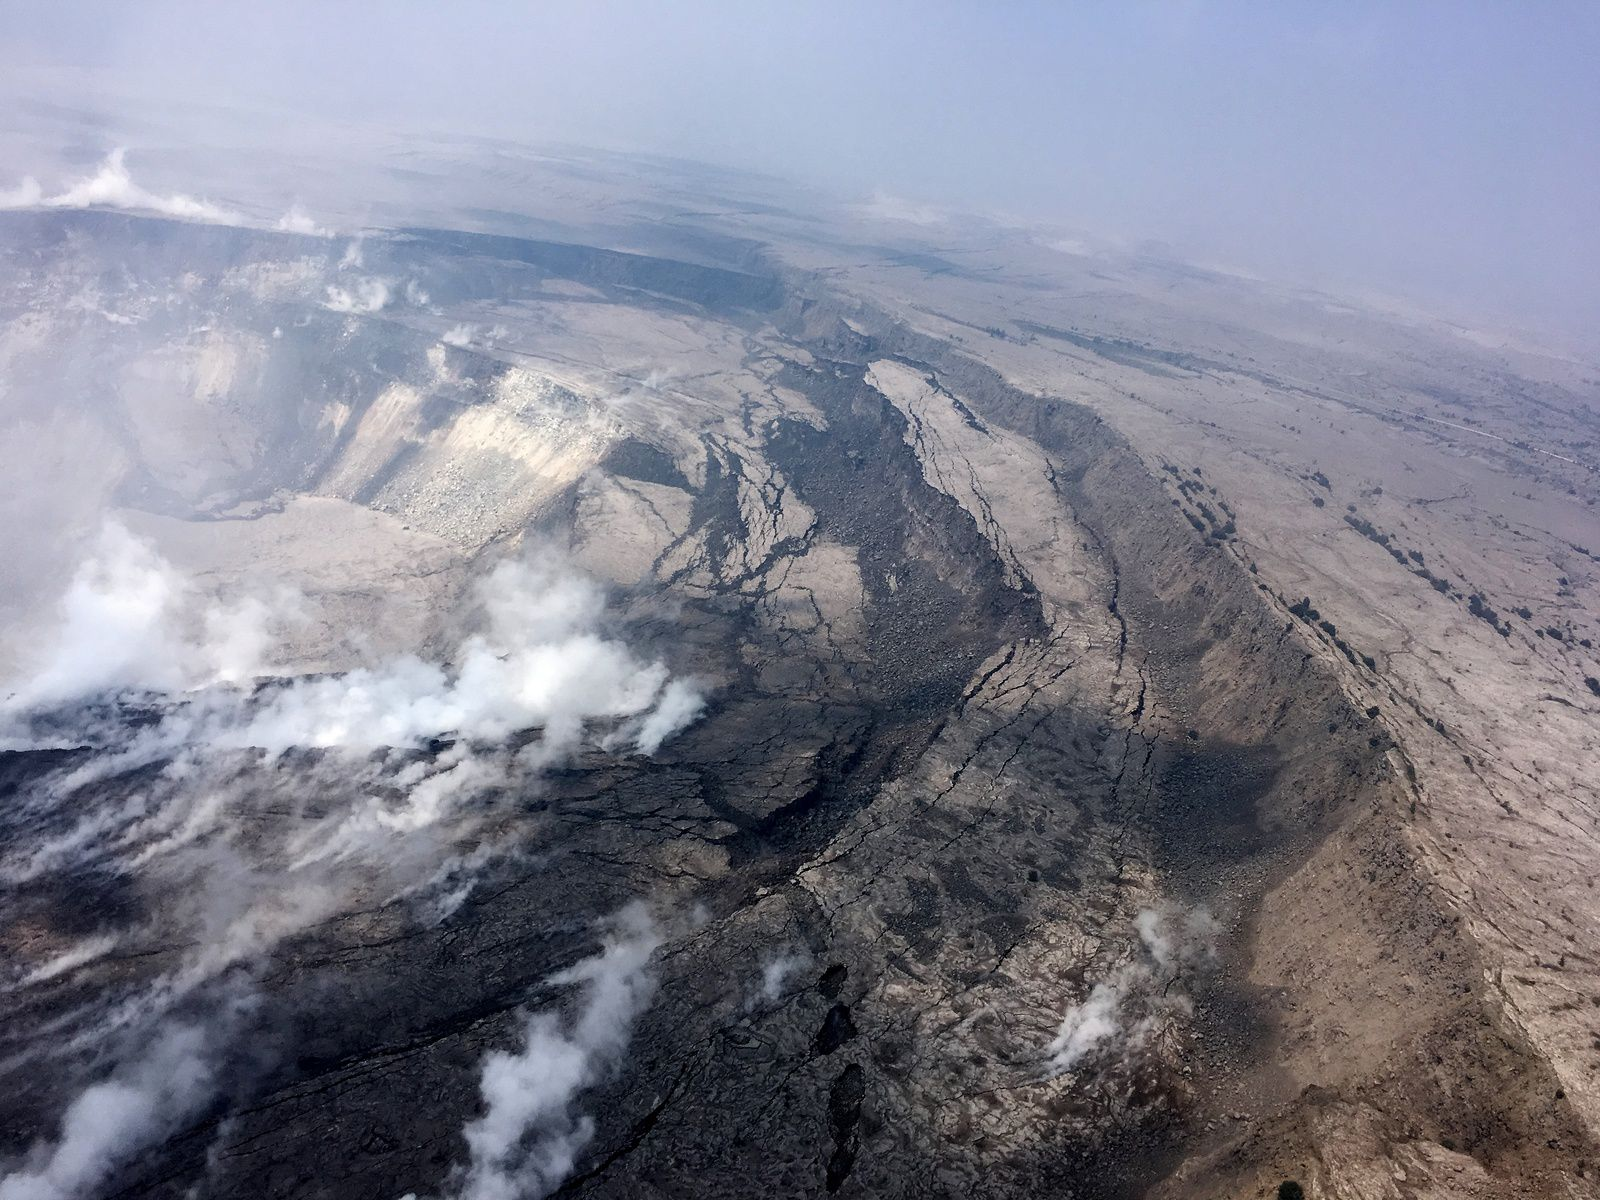 Kilauea summit -  Cracking and slumping of the Halema'uma'u crater walls are clearly evident in this aerial view captured during HVO's overflight of Kīlauea's summit this 09.06.2018